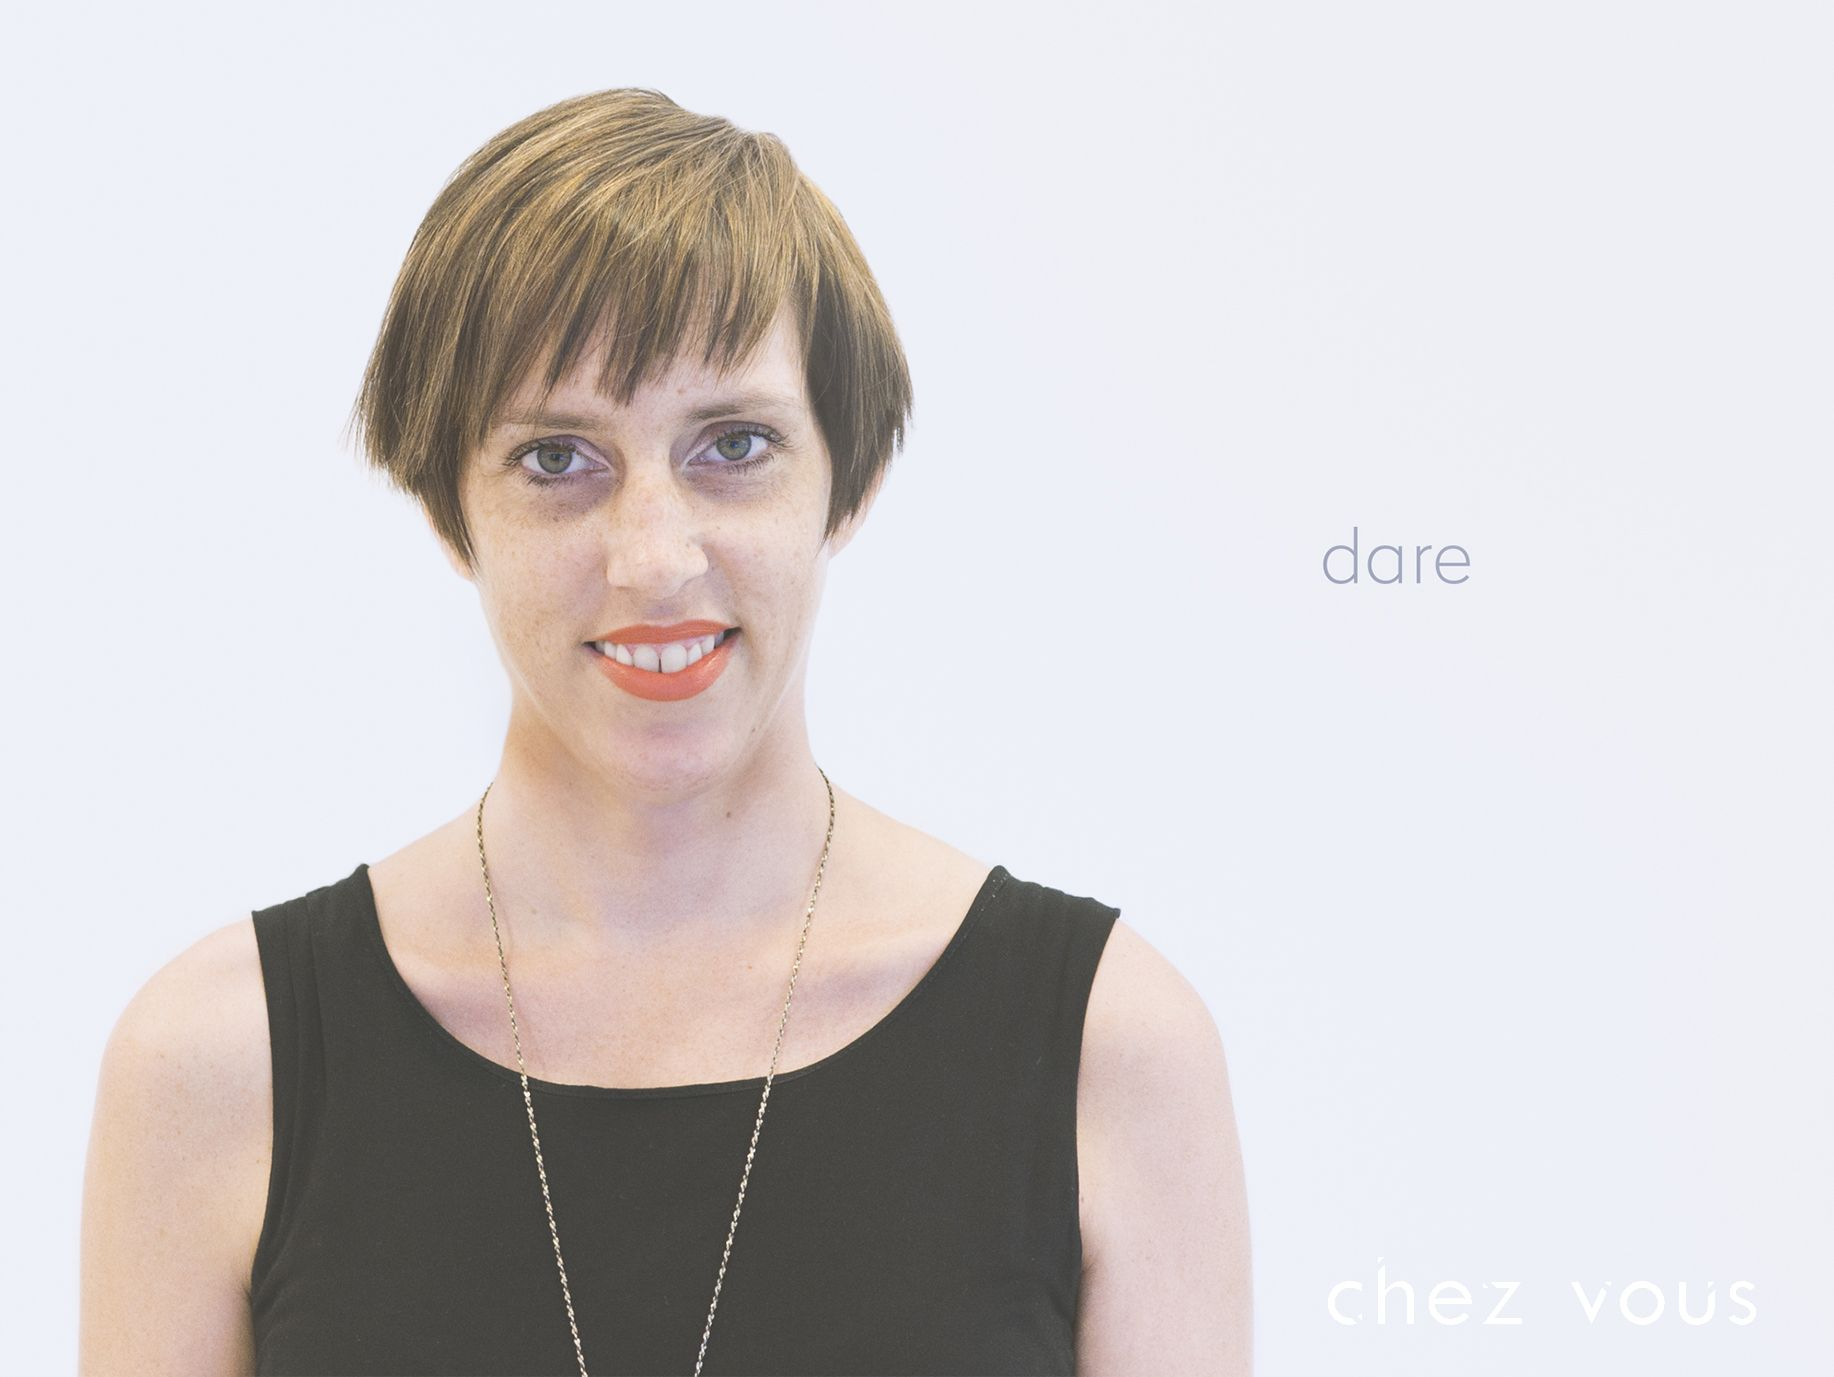 20th Anniversary 20 Lookbook Challenge #7: Geraldine. Vote for your favorite or most outstanding makeover posted on our Facebook page to win attractive prizes! All you need to do is Like, Share and Leave us a comment to tell us why this is your favorite makeover. 5 lucky voters will stand to win $150 Chez Vous hair & scalp service vouchers, and $200 worth of Kerastase latest luxury haircare range - RÉSISTANCE THÉRAPISTE.